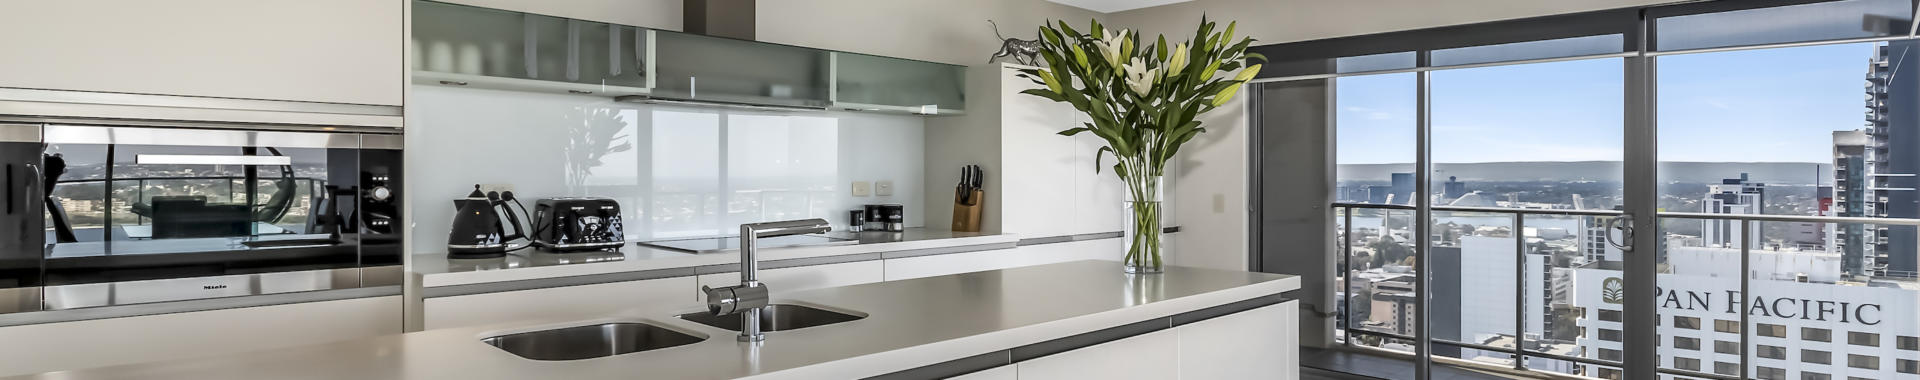 Perth AdelaideTerrace 3 bed corporate apartment kitchen